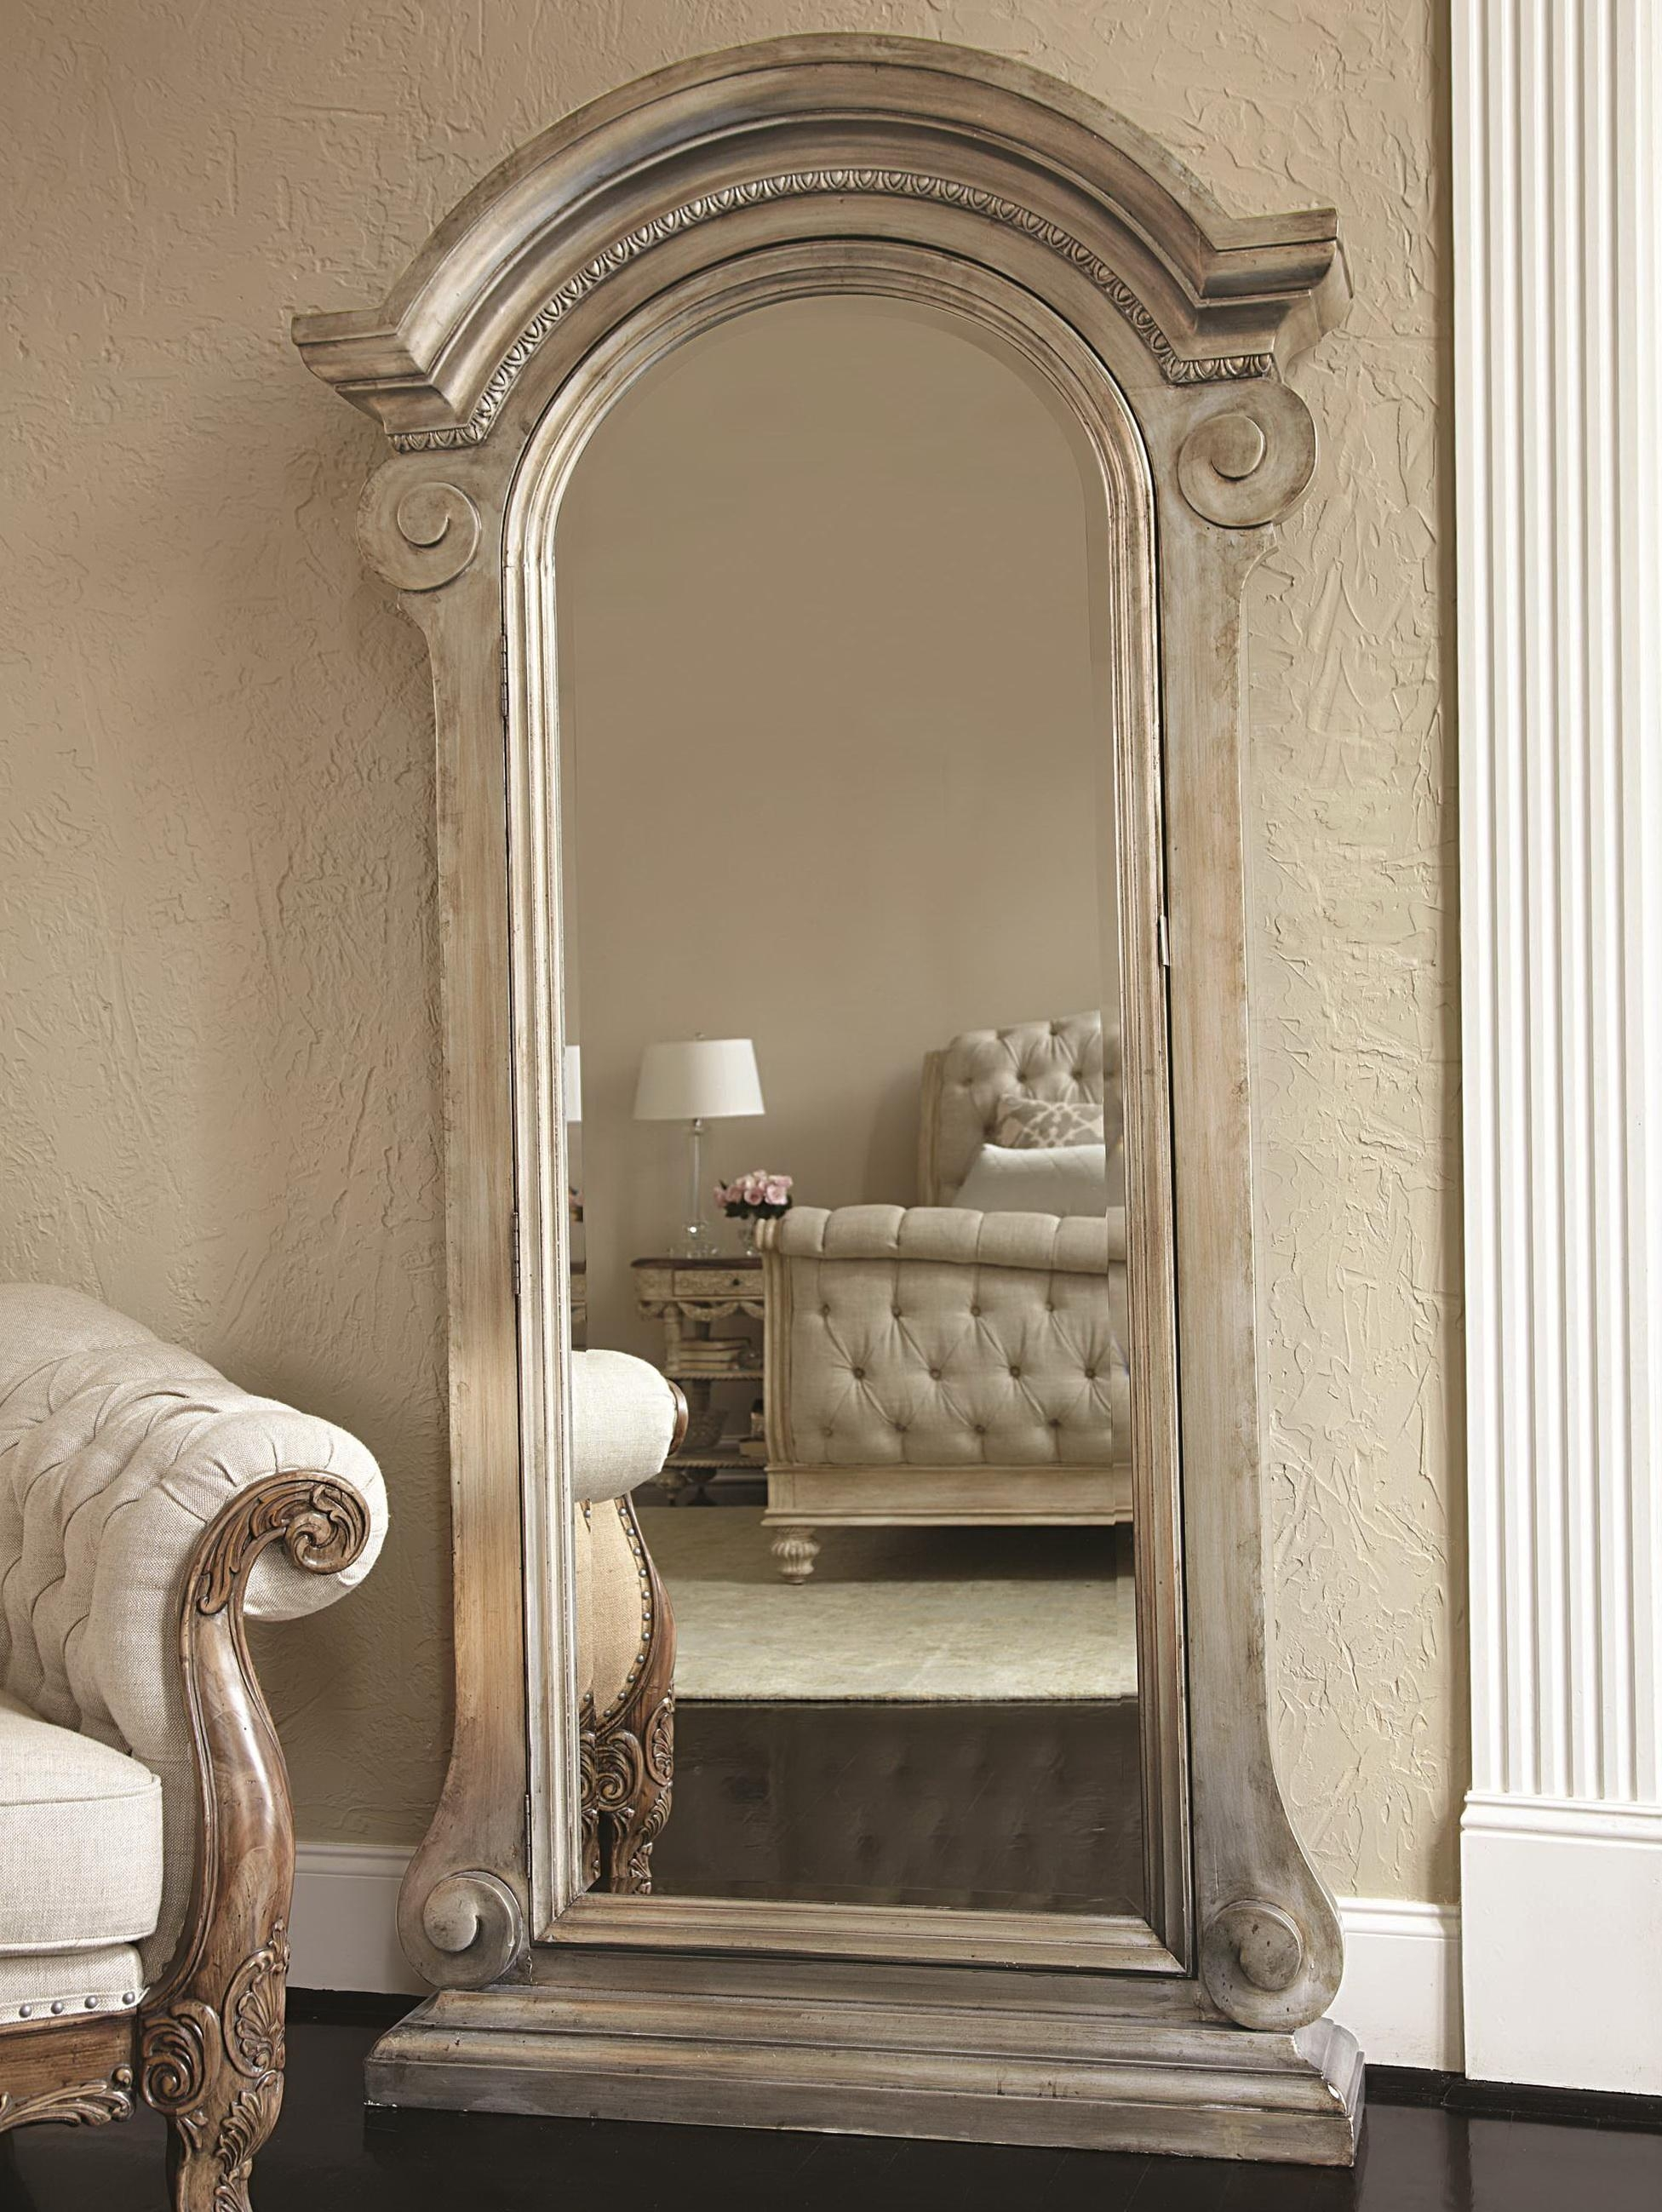 Furniture: Black Jewelry Armoire Mirror On Wooden Floor And Cream Intended For Antique Cream Wall Mirrors (View 5 of 20)